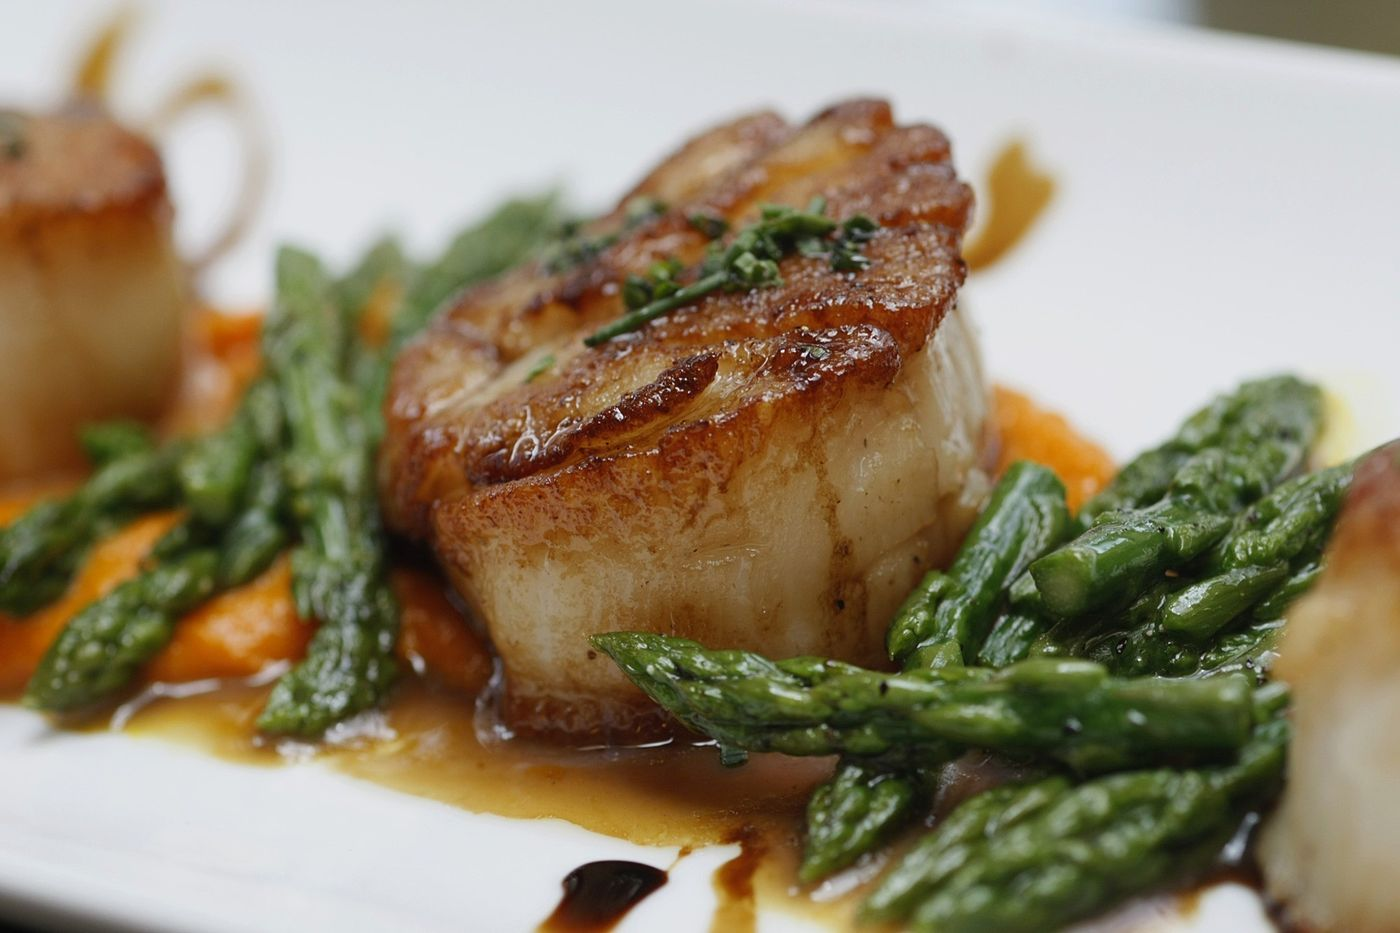 Scallops with heirloom carrot puree, asparagus, and aged balsamic vinegar. (Gary Friedman / Los Angeles Times)